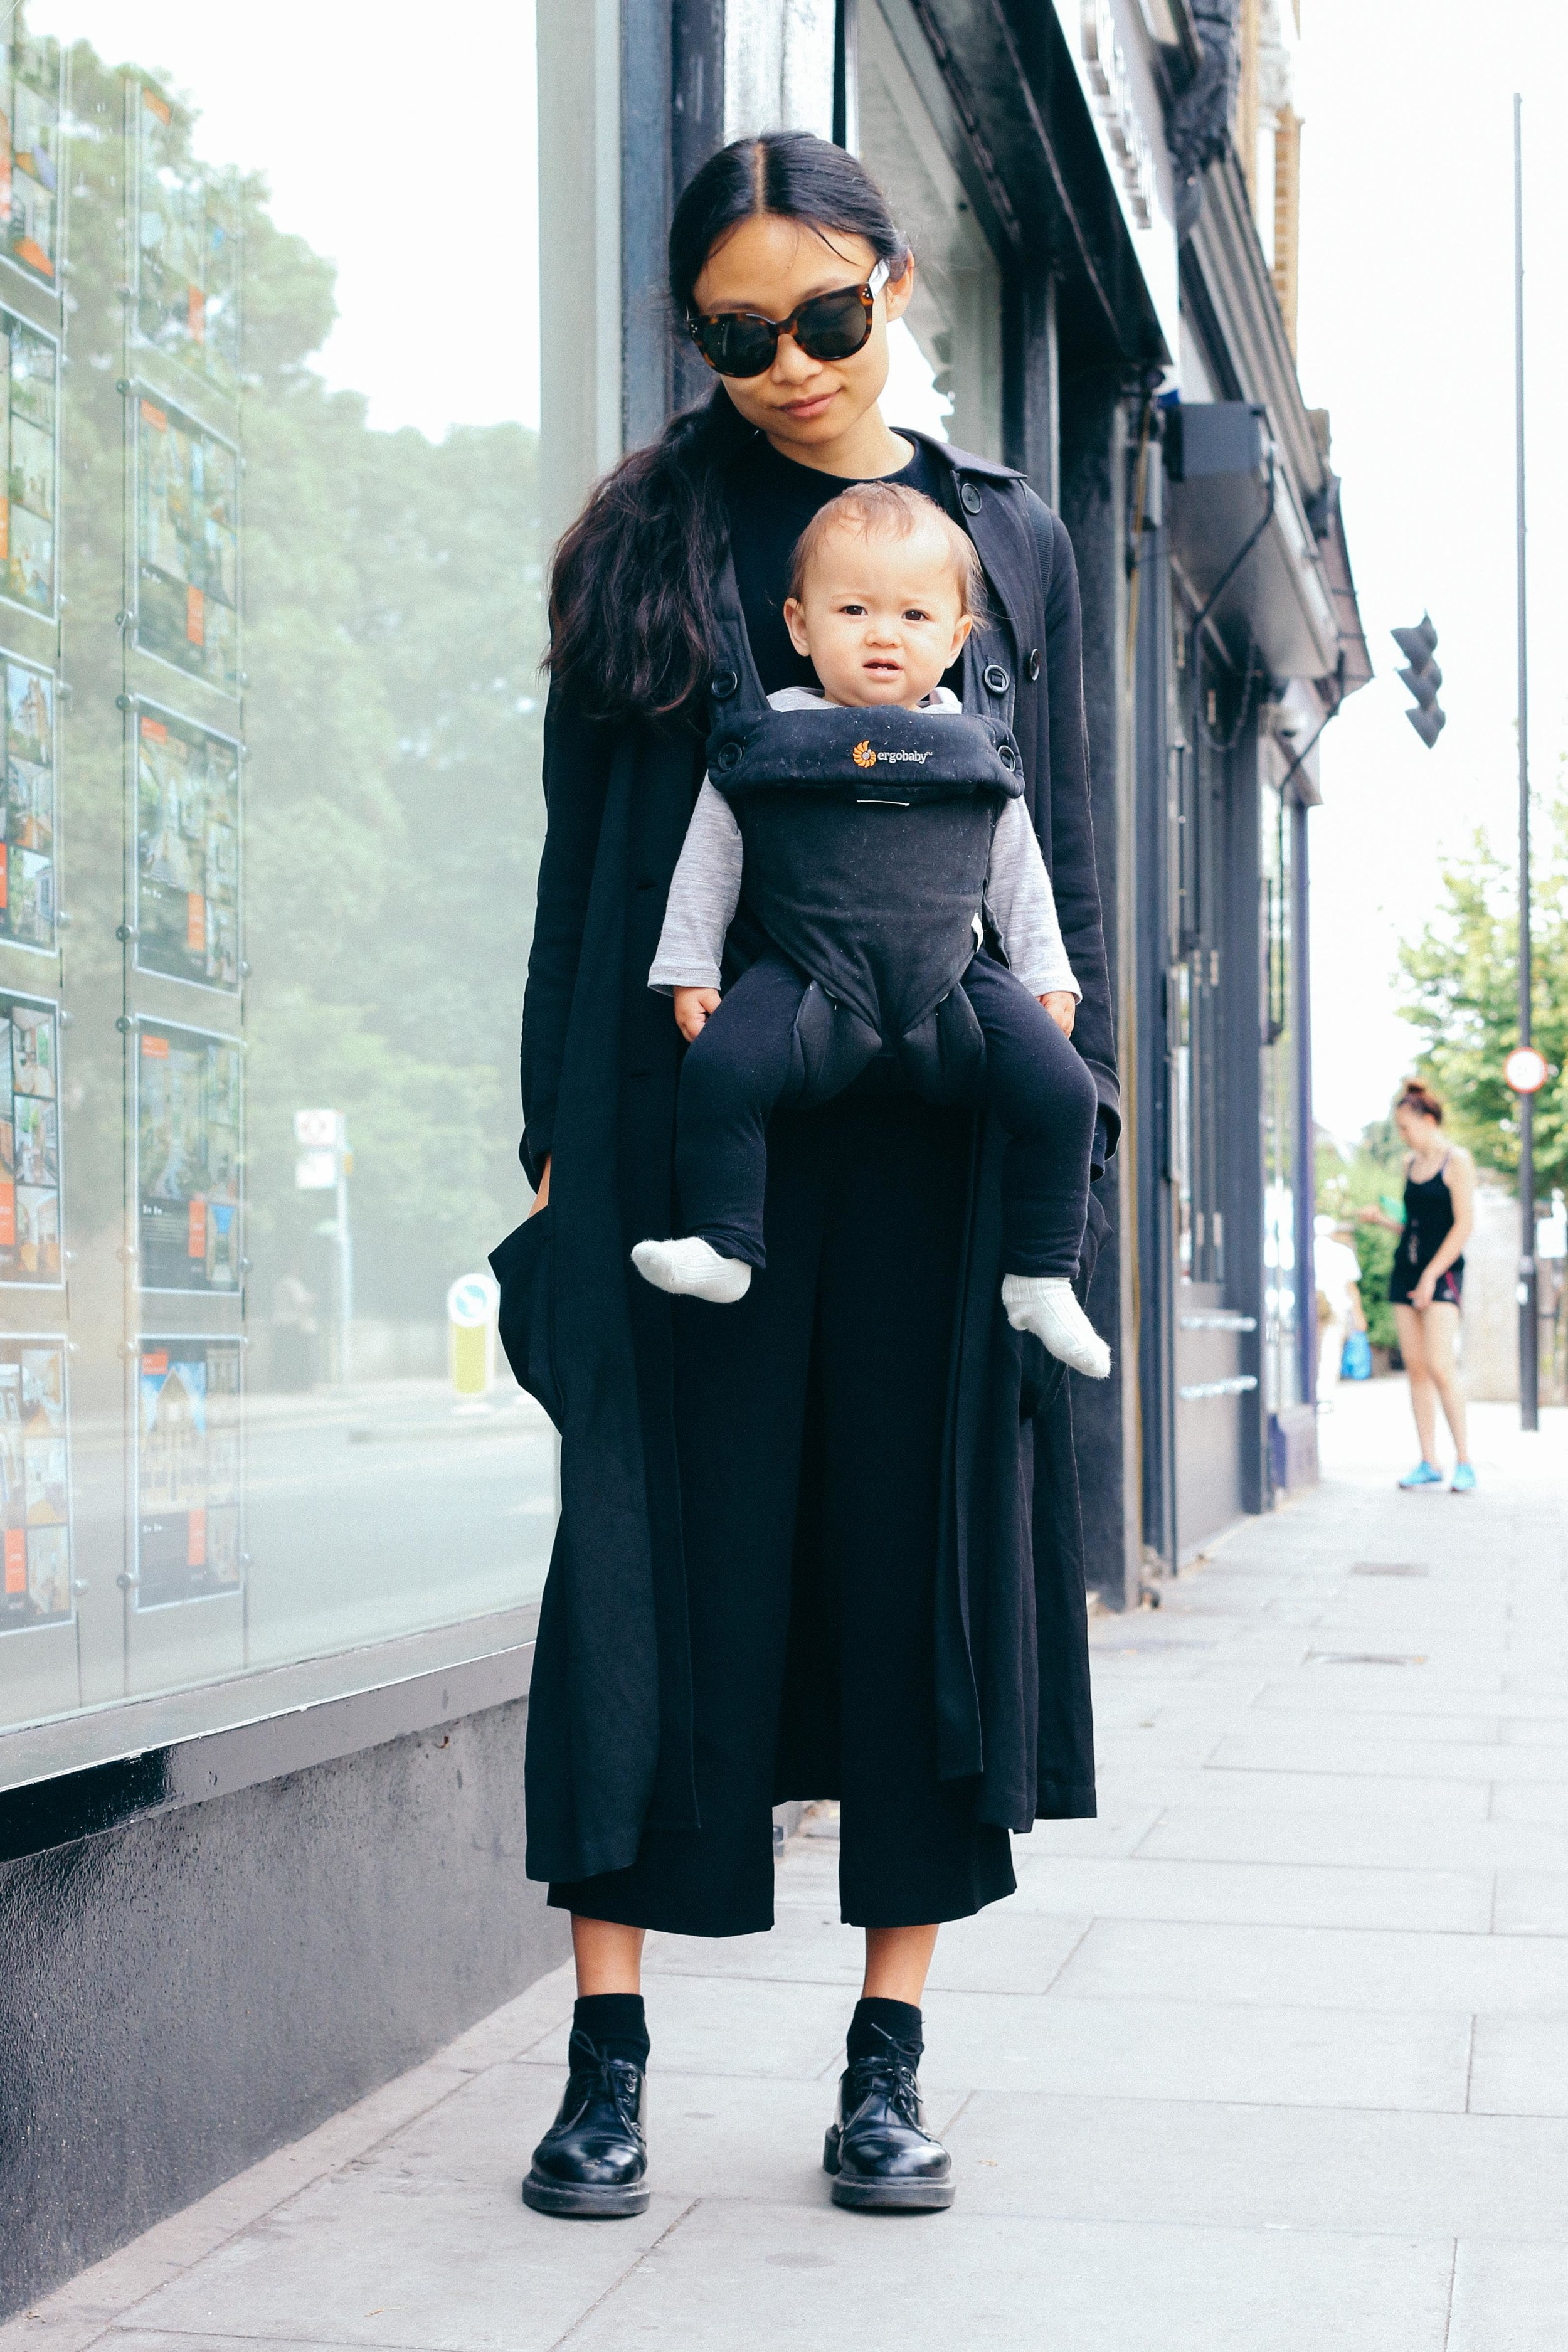 Street fashion stories_Imaginealady_baby-breast-feeding-outfi-fashion-kids-